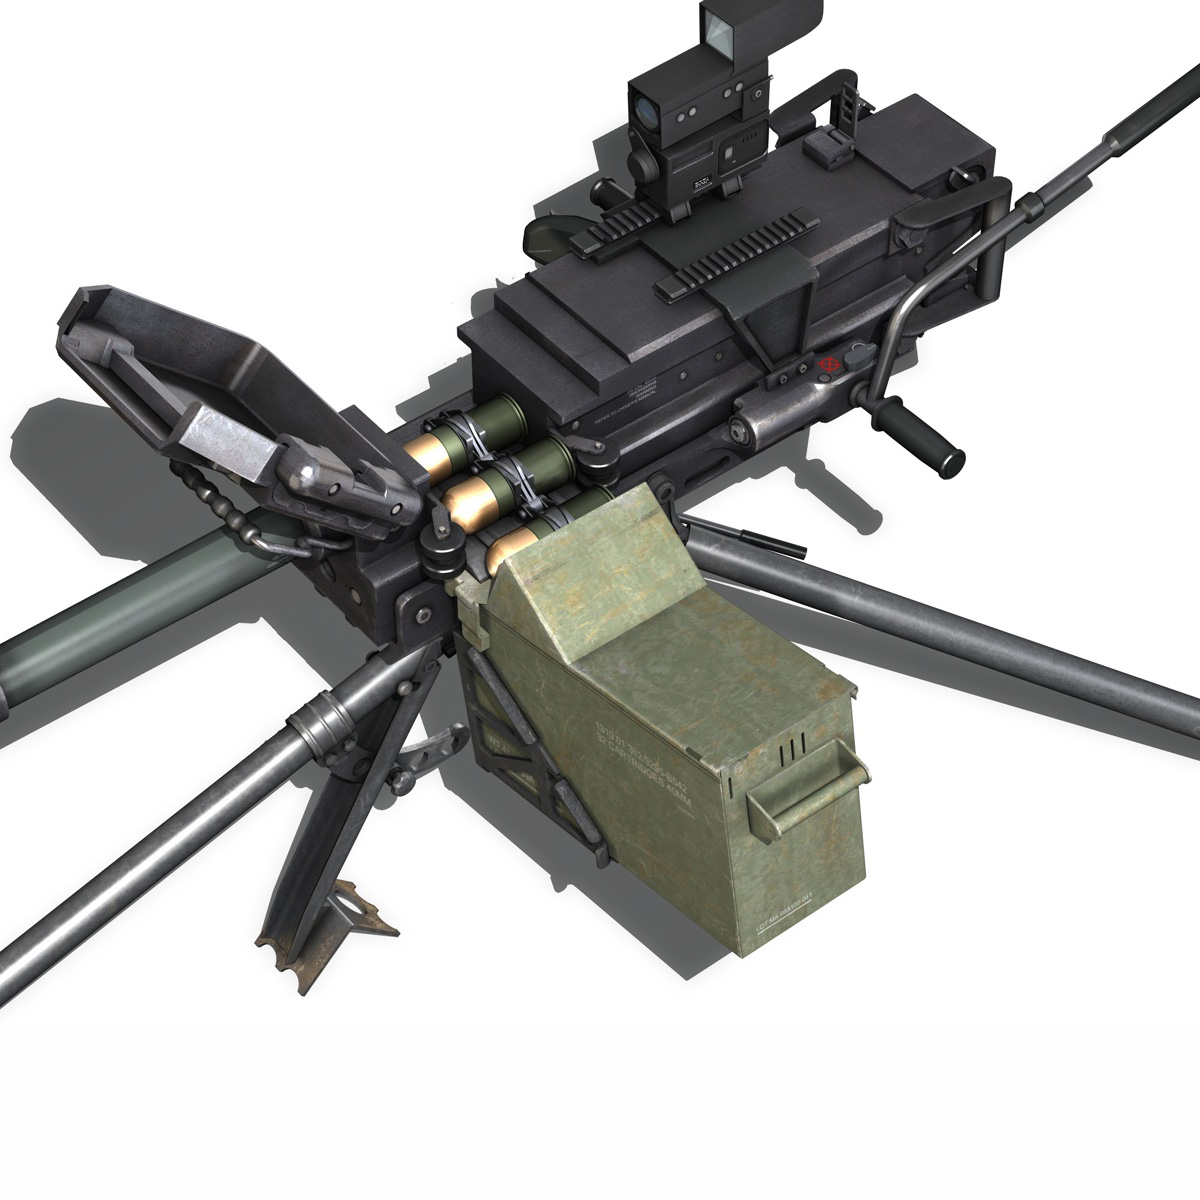 gmg 40mm grenade machine gun 3d model 3ds c4d lwo obj 264287